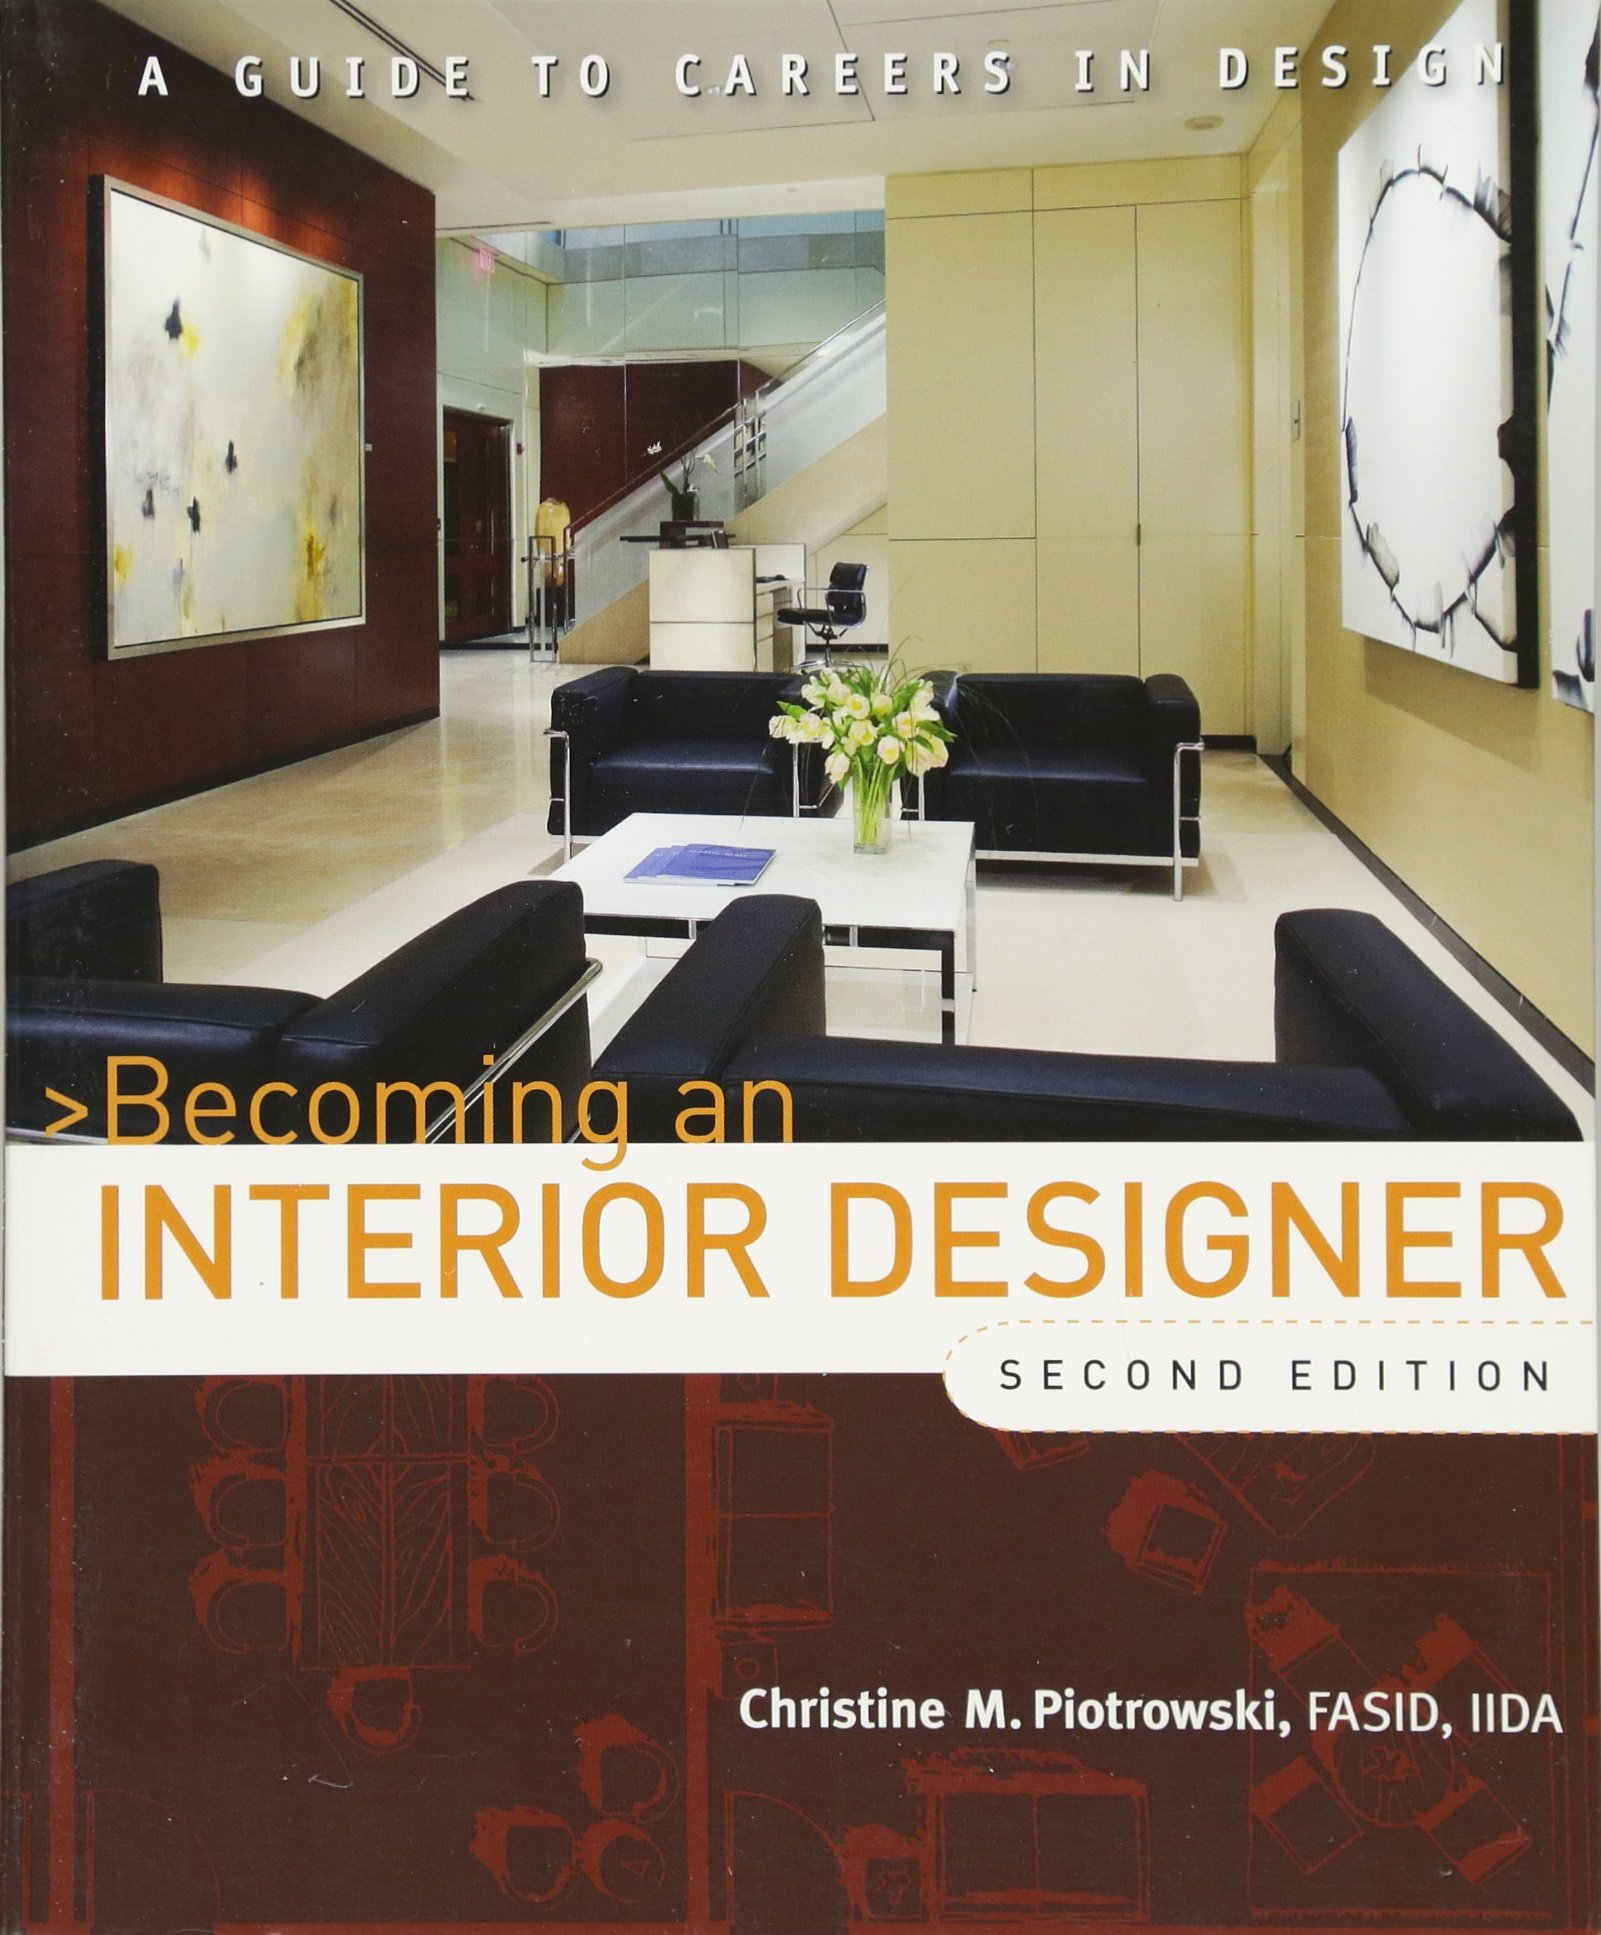 design interior architectural fabulous in of information on career decoration careers studies